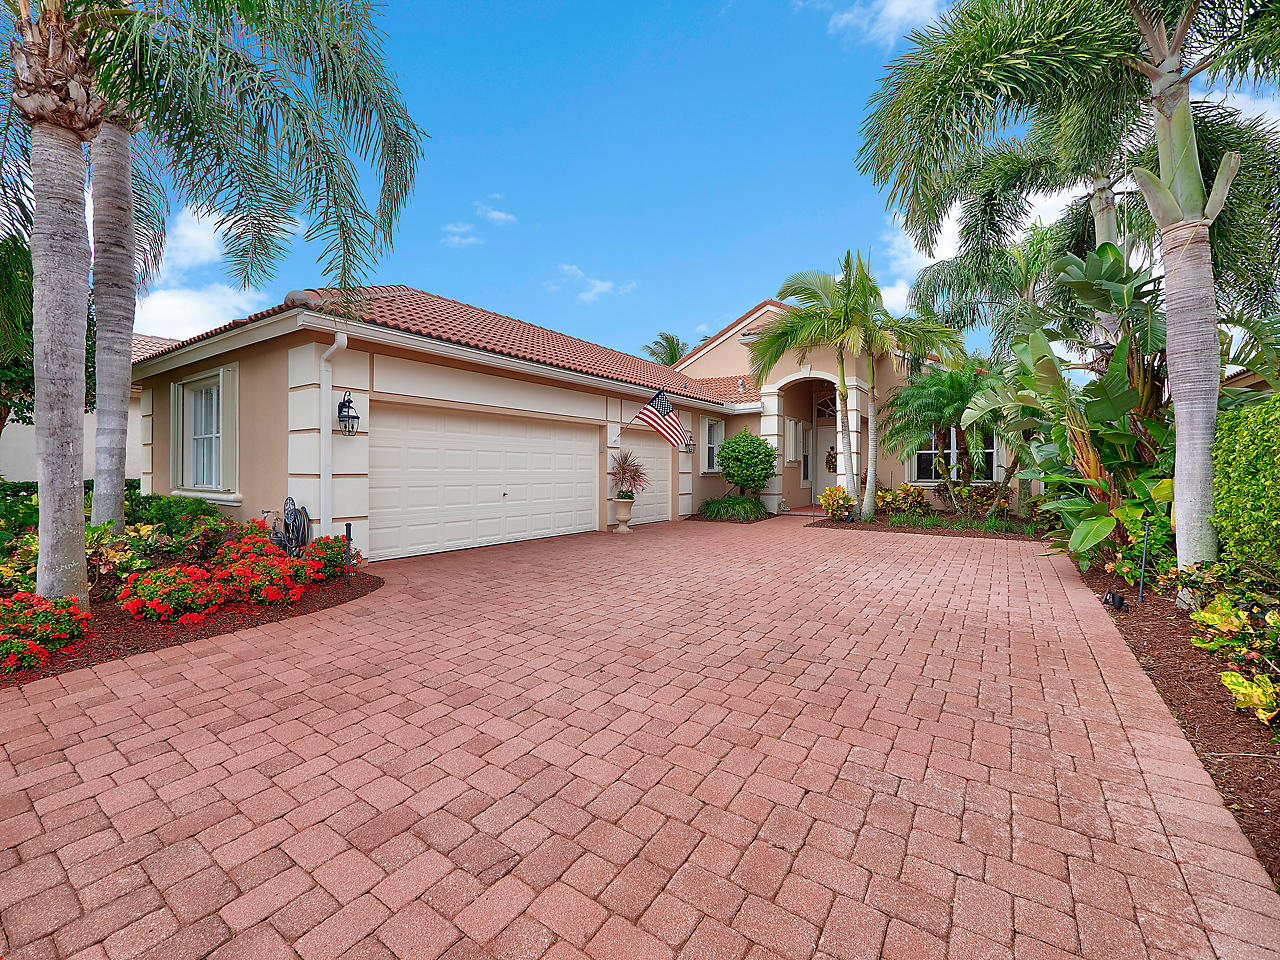 Details for 8216 Spyglass Drive, West Palm Beach, FL 33412